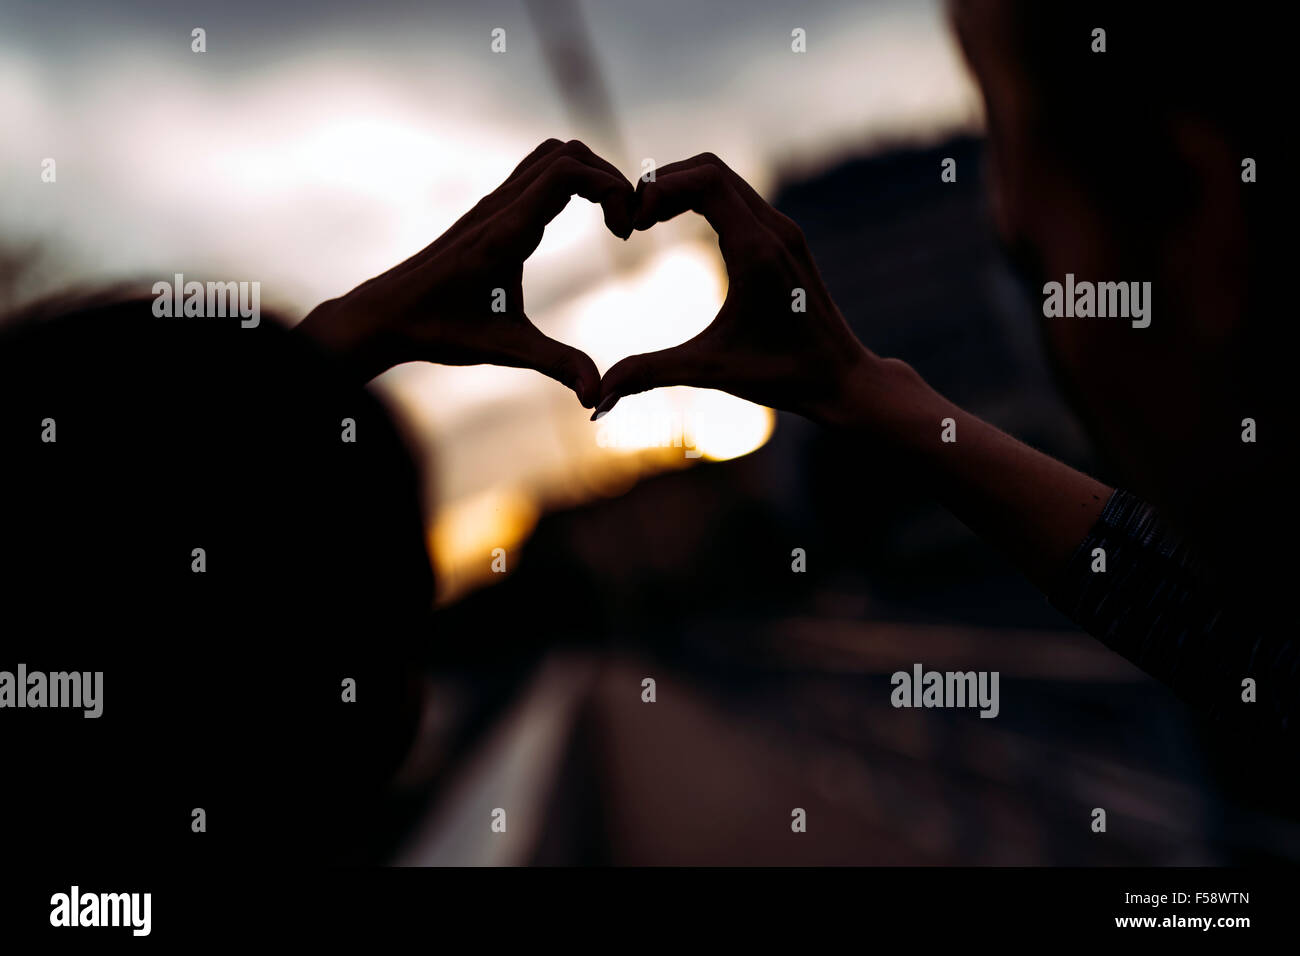 Silhouette of a heart made by hand - Stock Image